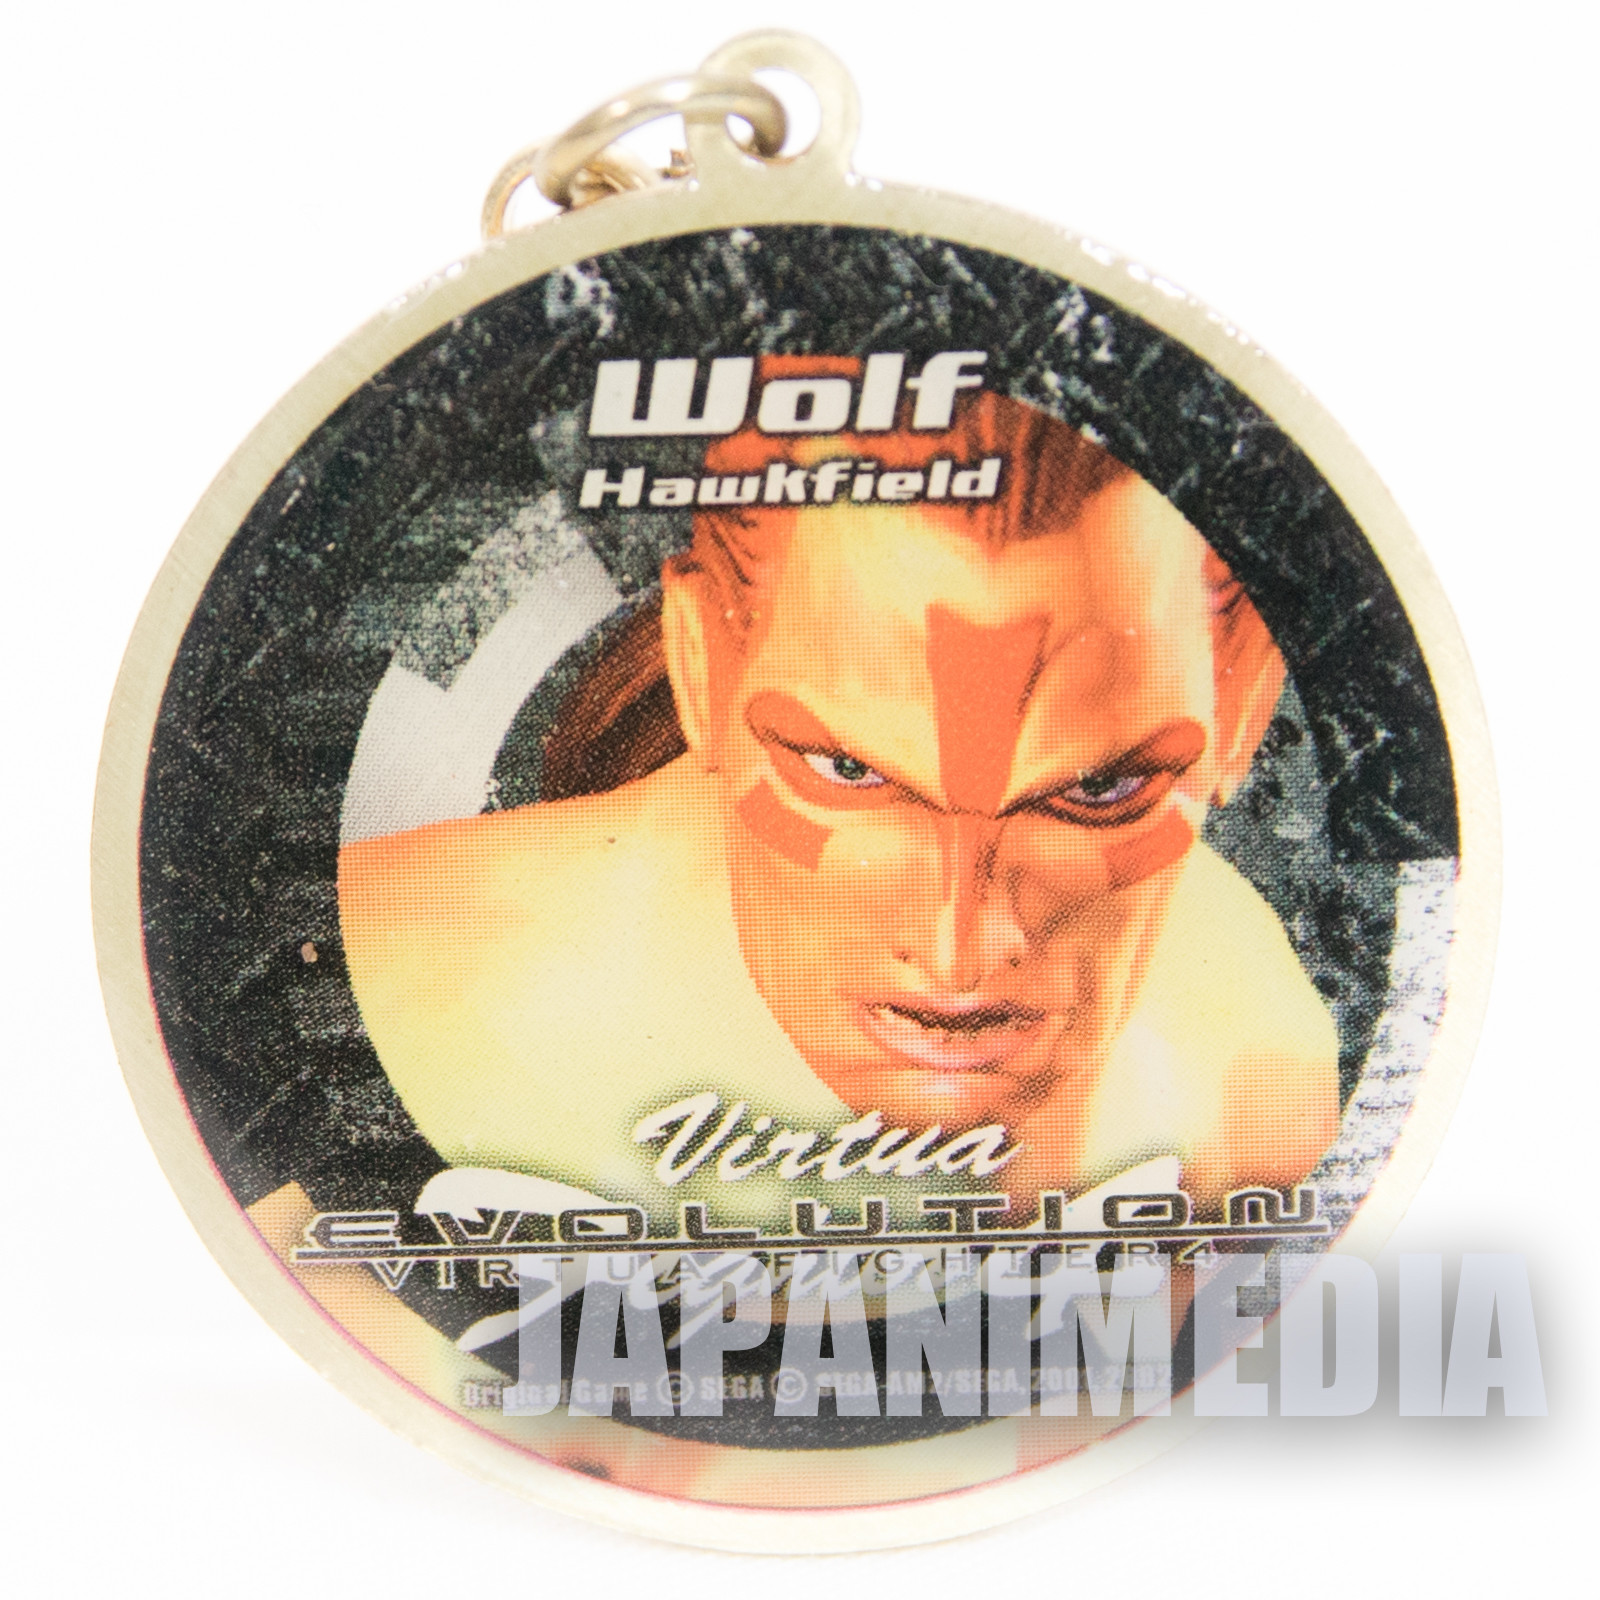 Virtua Fighter 4 Wolf Hawkfield Metal Mascot Charm JAPAN GAME SEGA